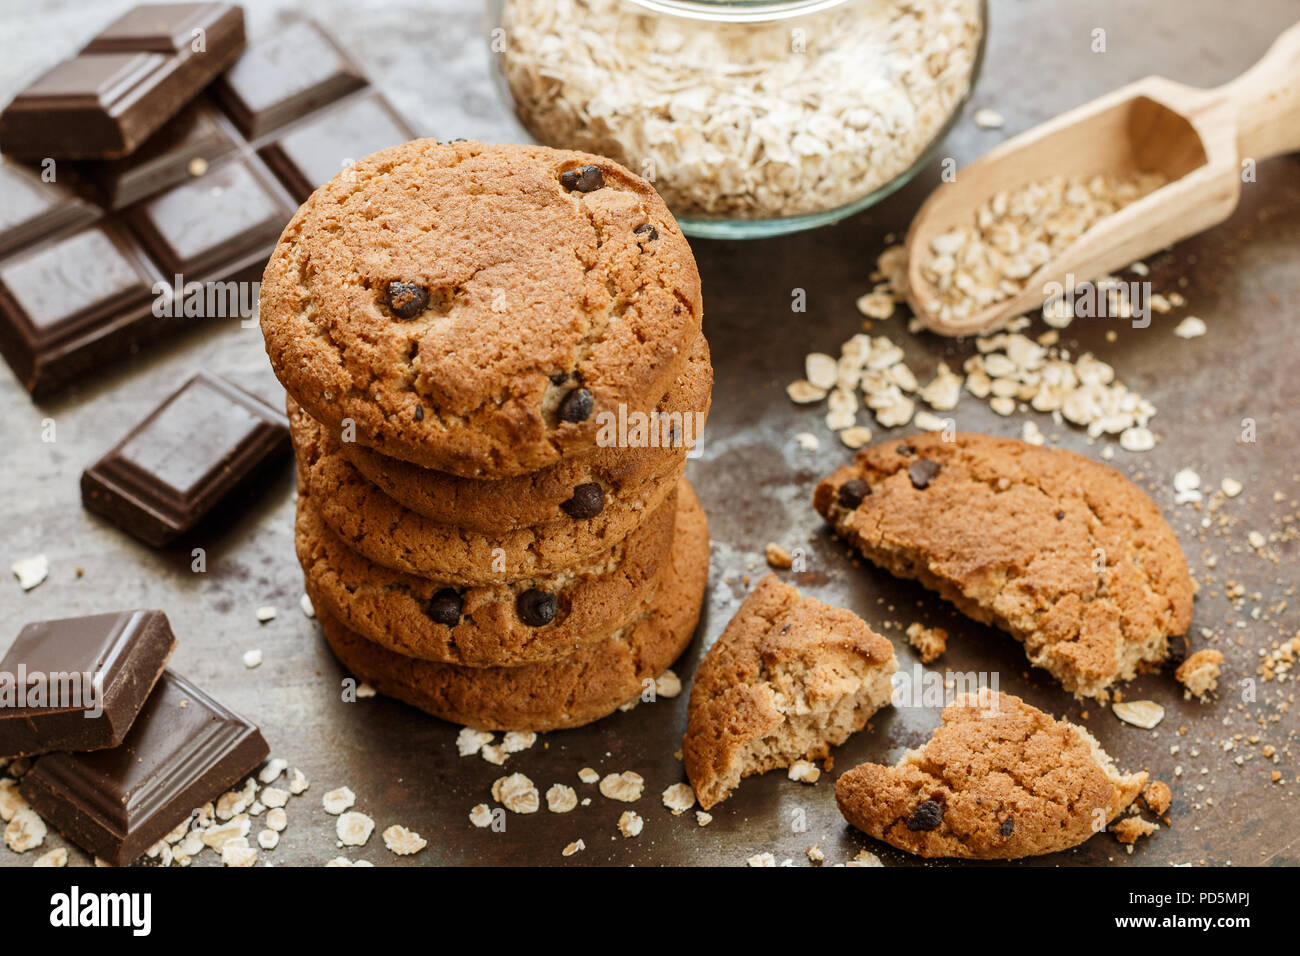 Homemade whole wheat oatmeal cookies with chocolate chips. Tasty healthy snack for Breakfast. Selective focus - Stock Image